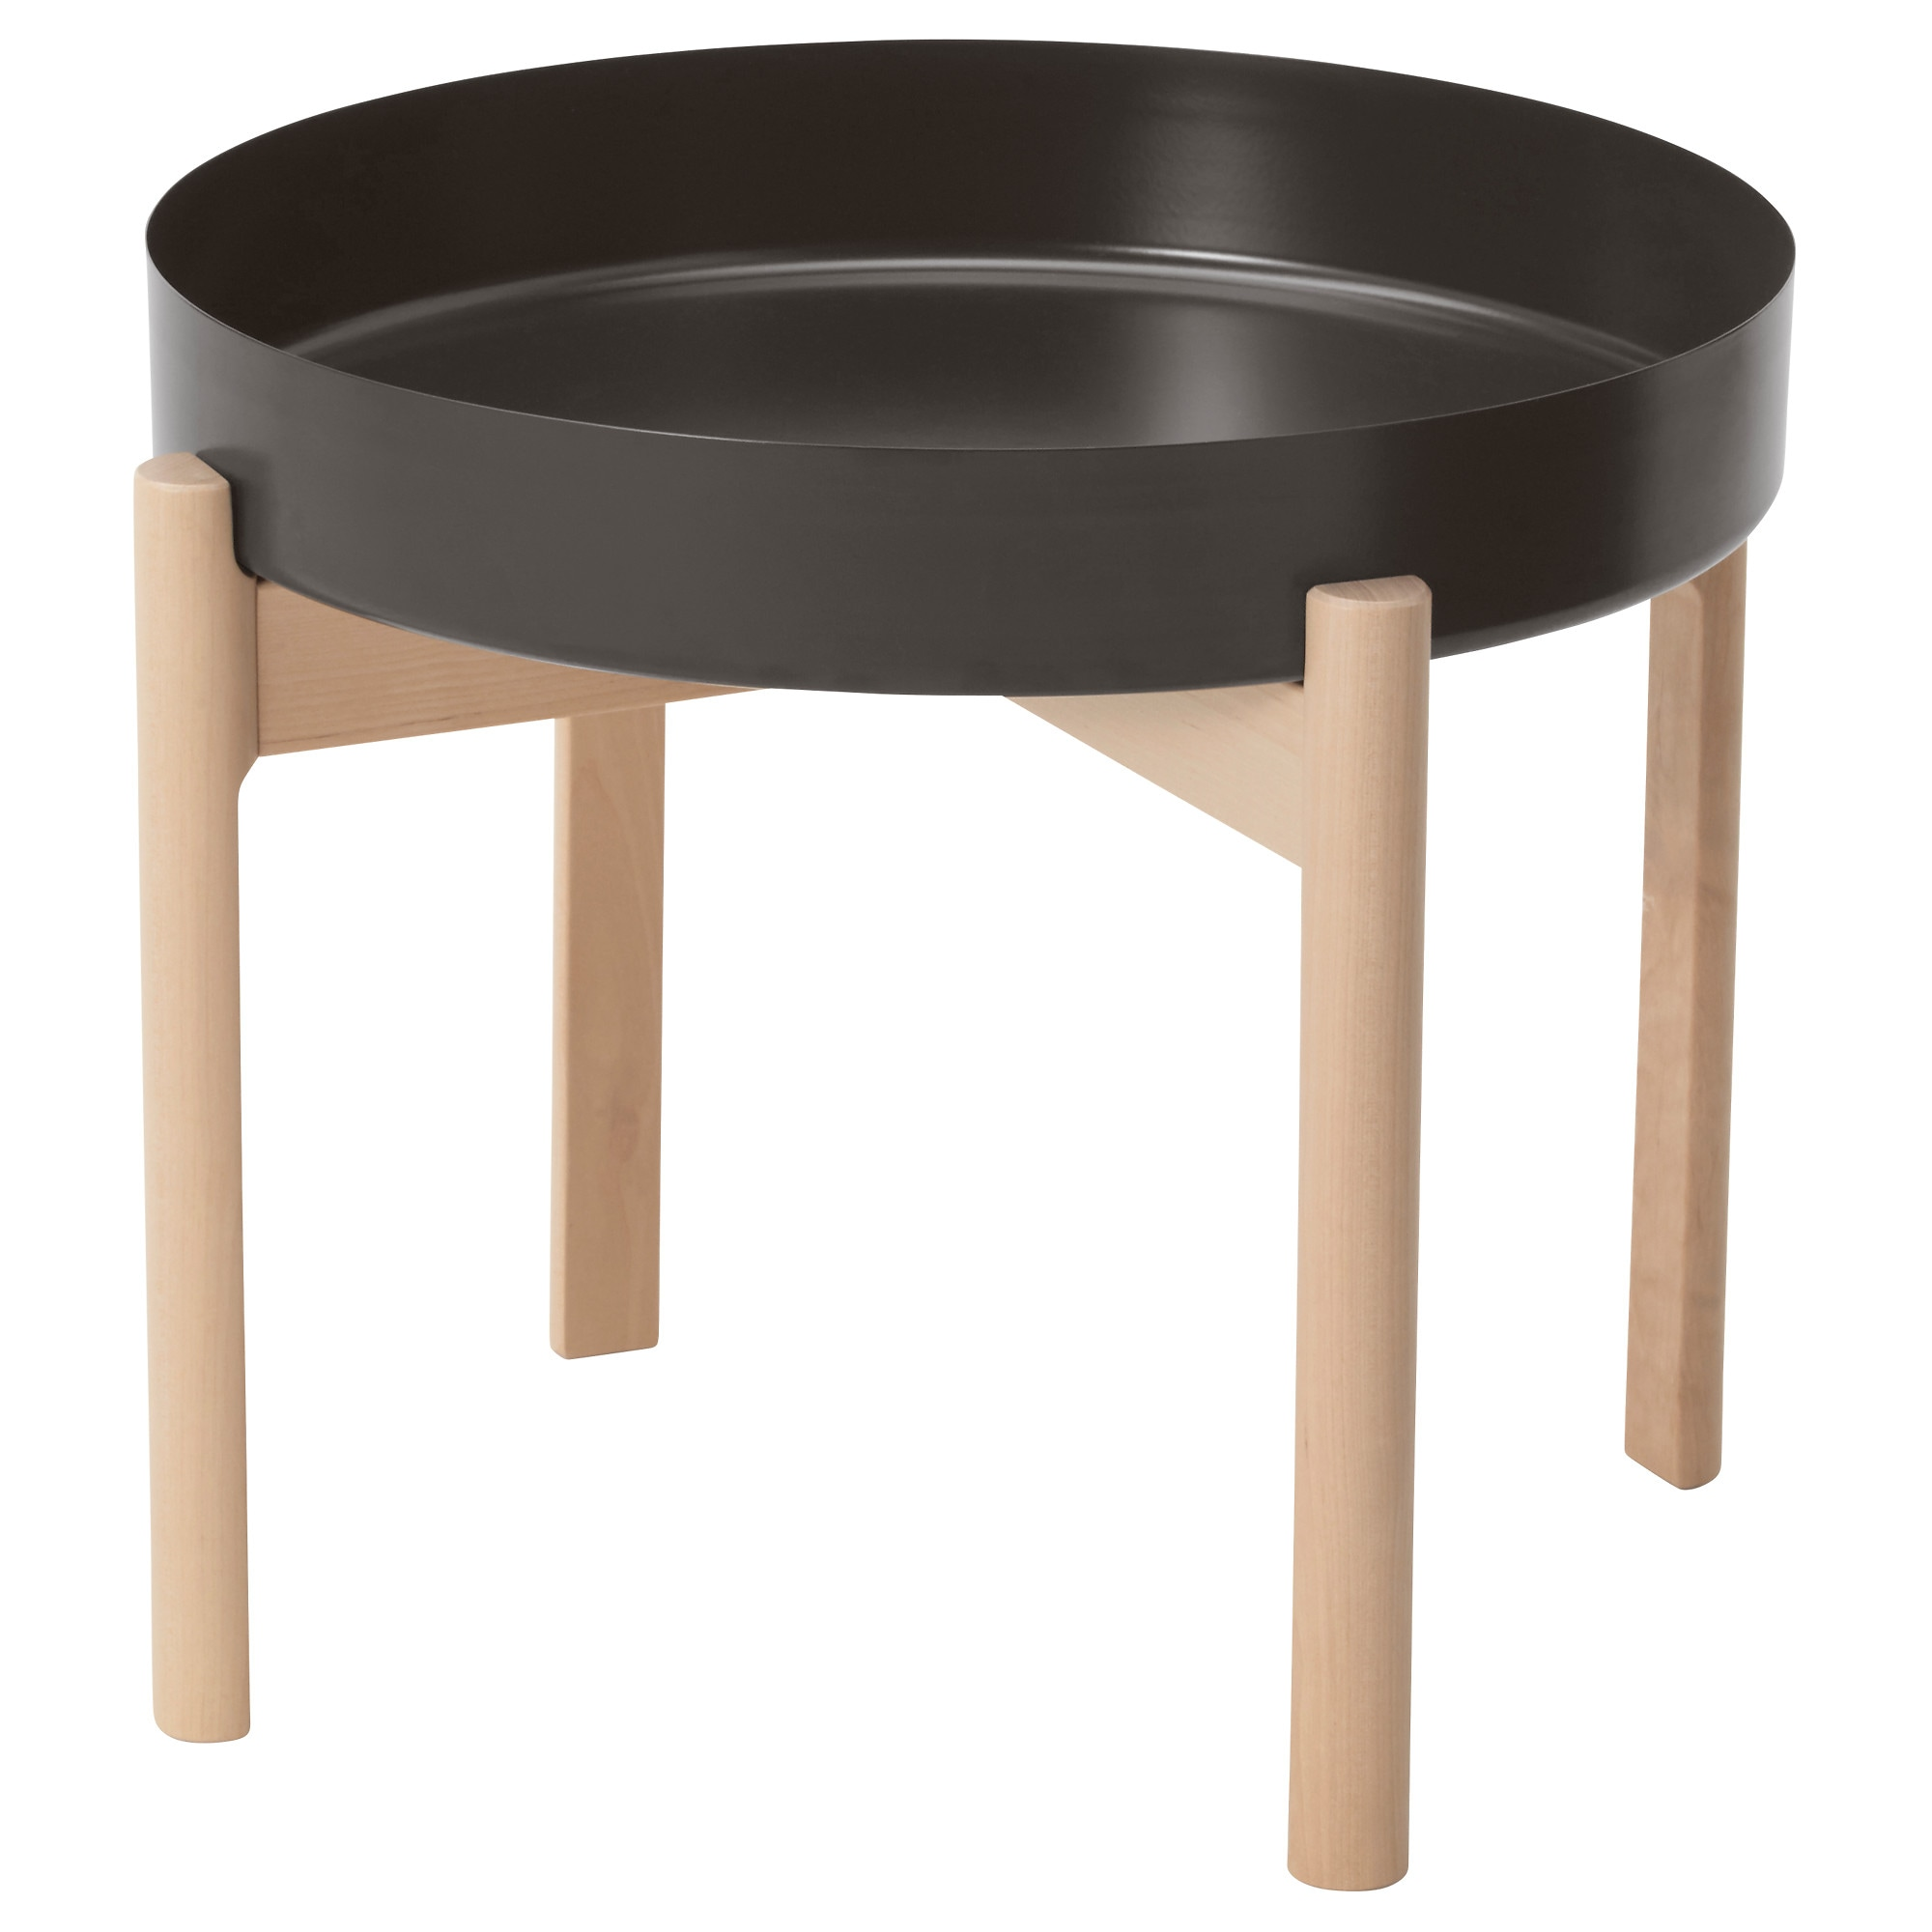 Coffee tables glass wooden coffee tables ikea ypperlig coffee table dark gray birch height 15 34 diameter geotapseo Gallery